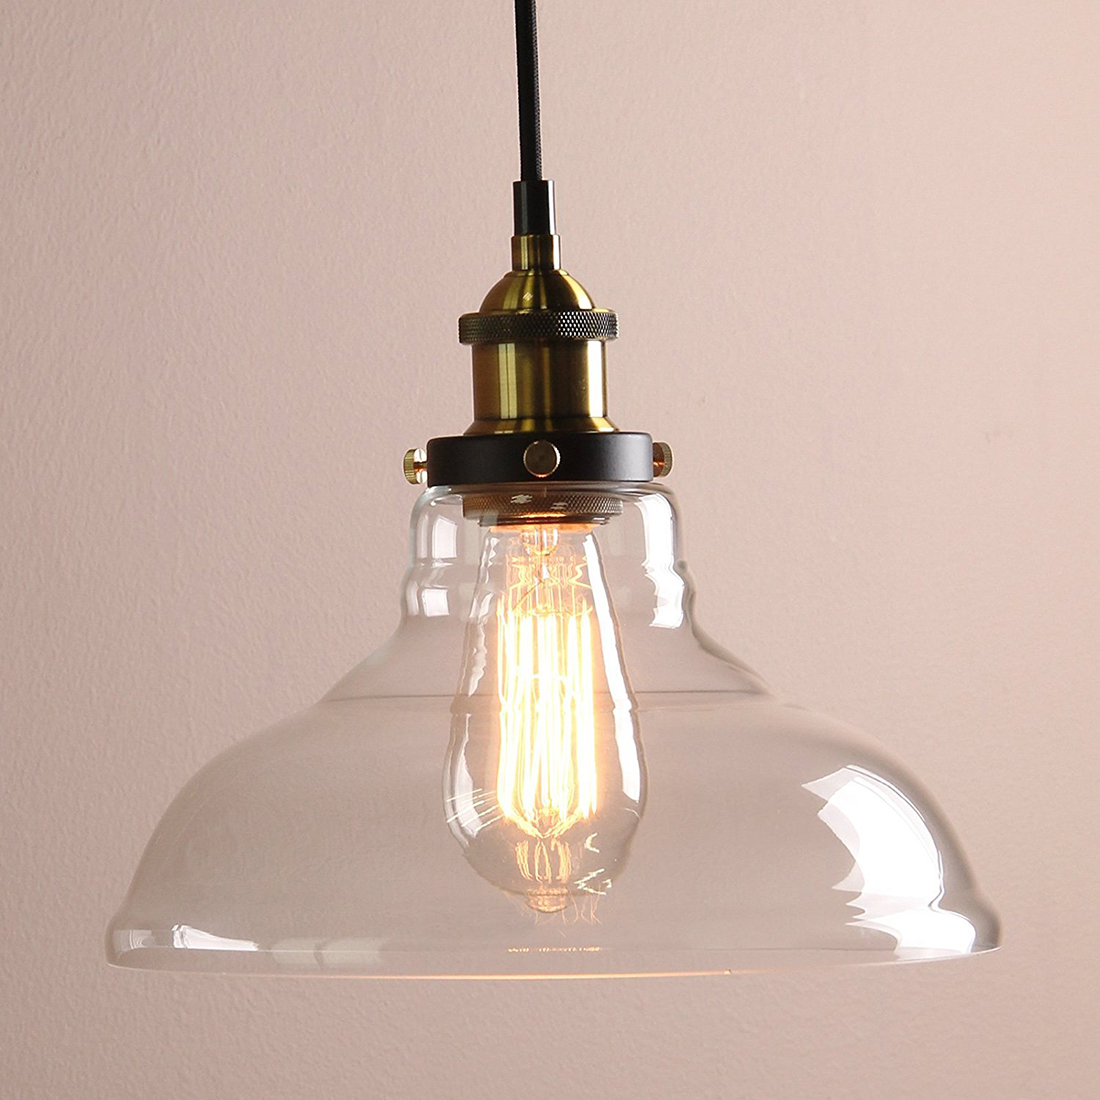 Modern Vintage Industrial 1 Light Iron Body Glass Shade Loft Coffee Bar Kitchen cover Chandeliers Hanging Pendant Lamp Light T vintage loft industrial edison flower glass ceiling lamp droplight pendant hotel hallway store club cafe beside coffee shop